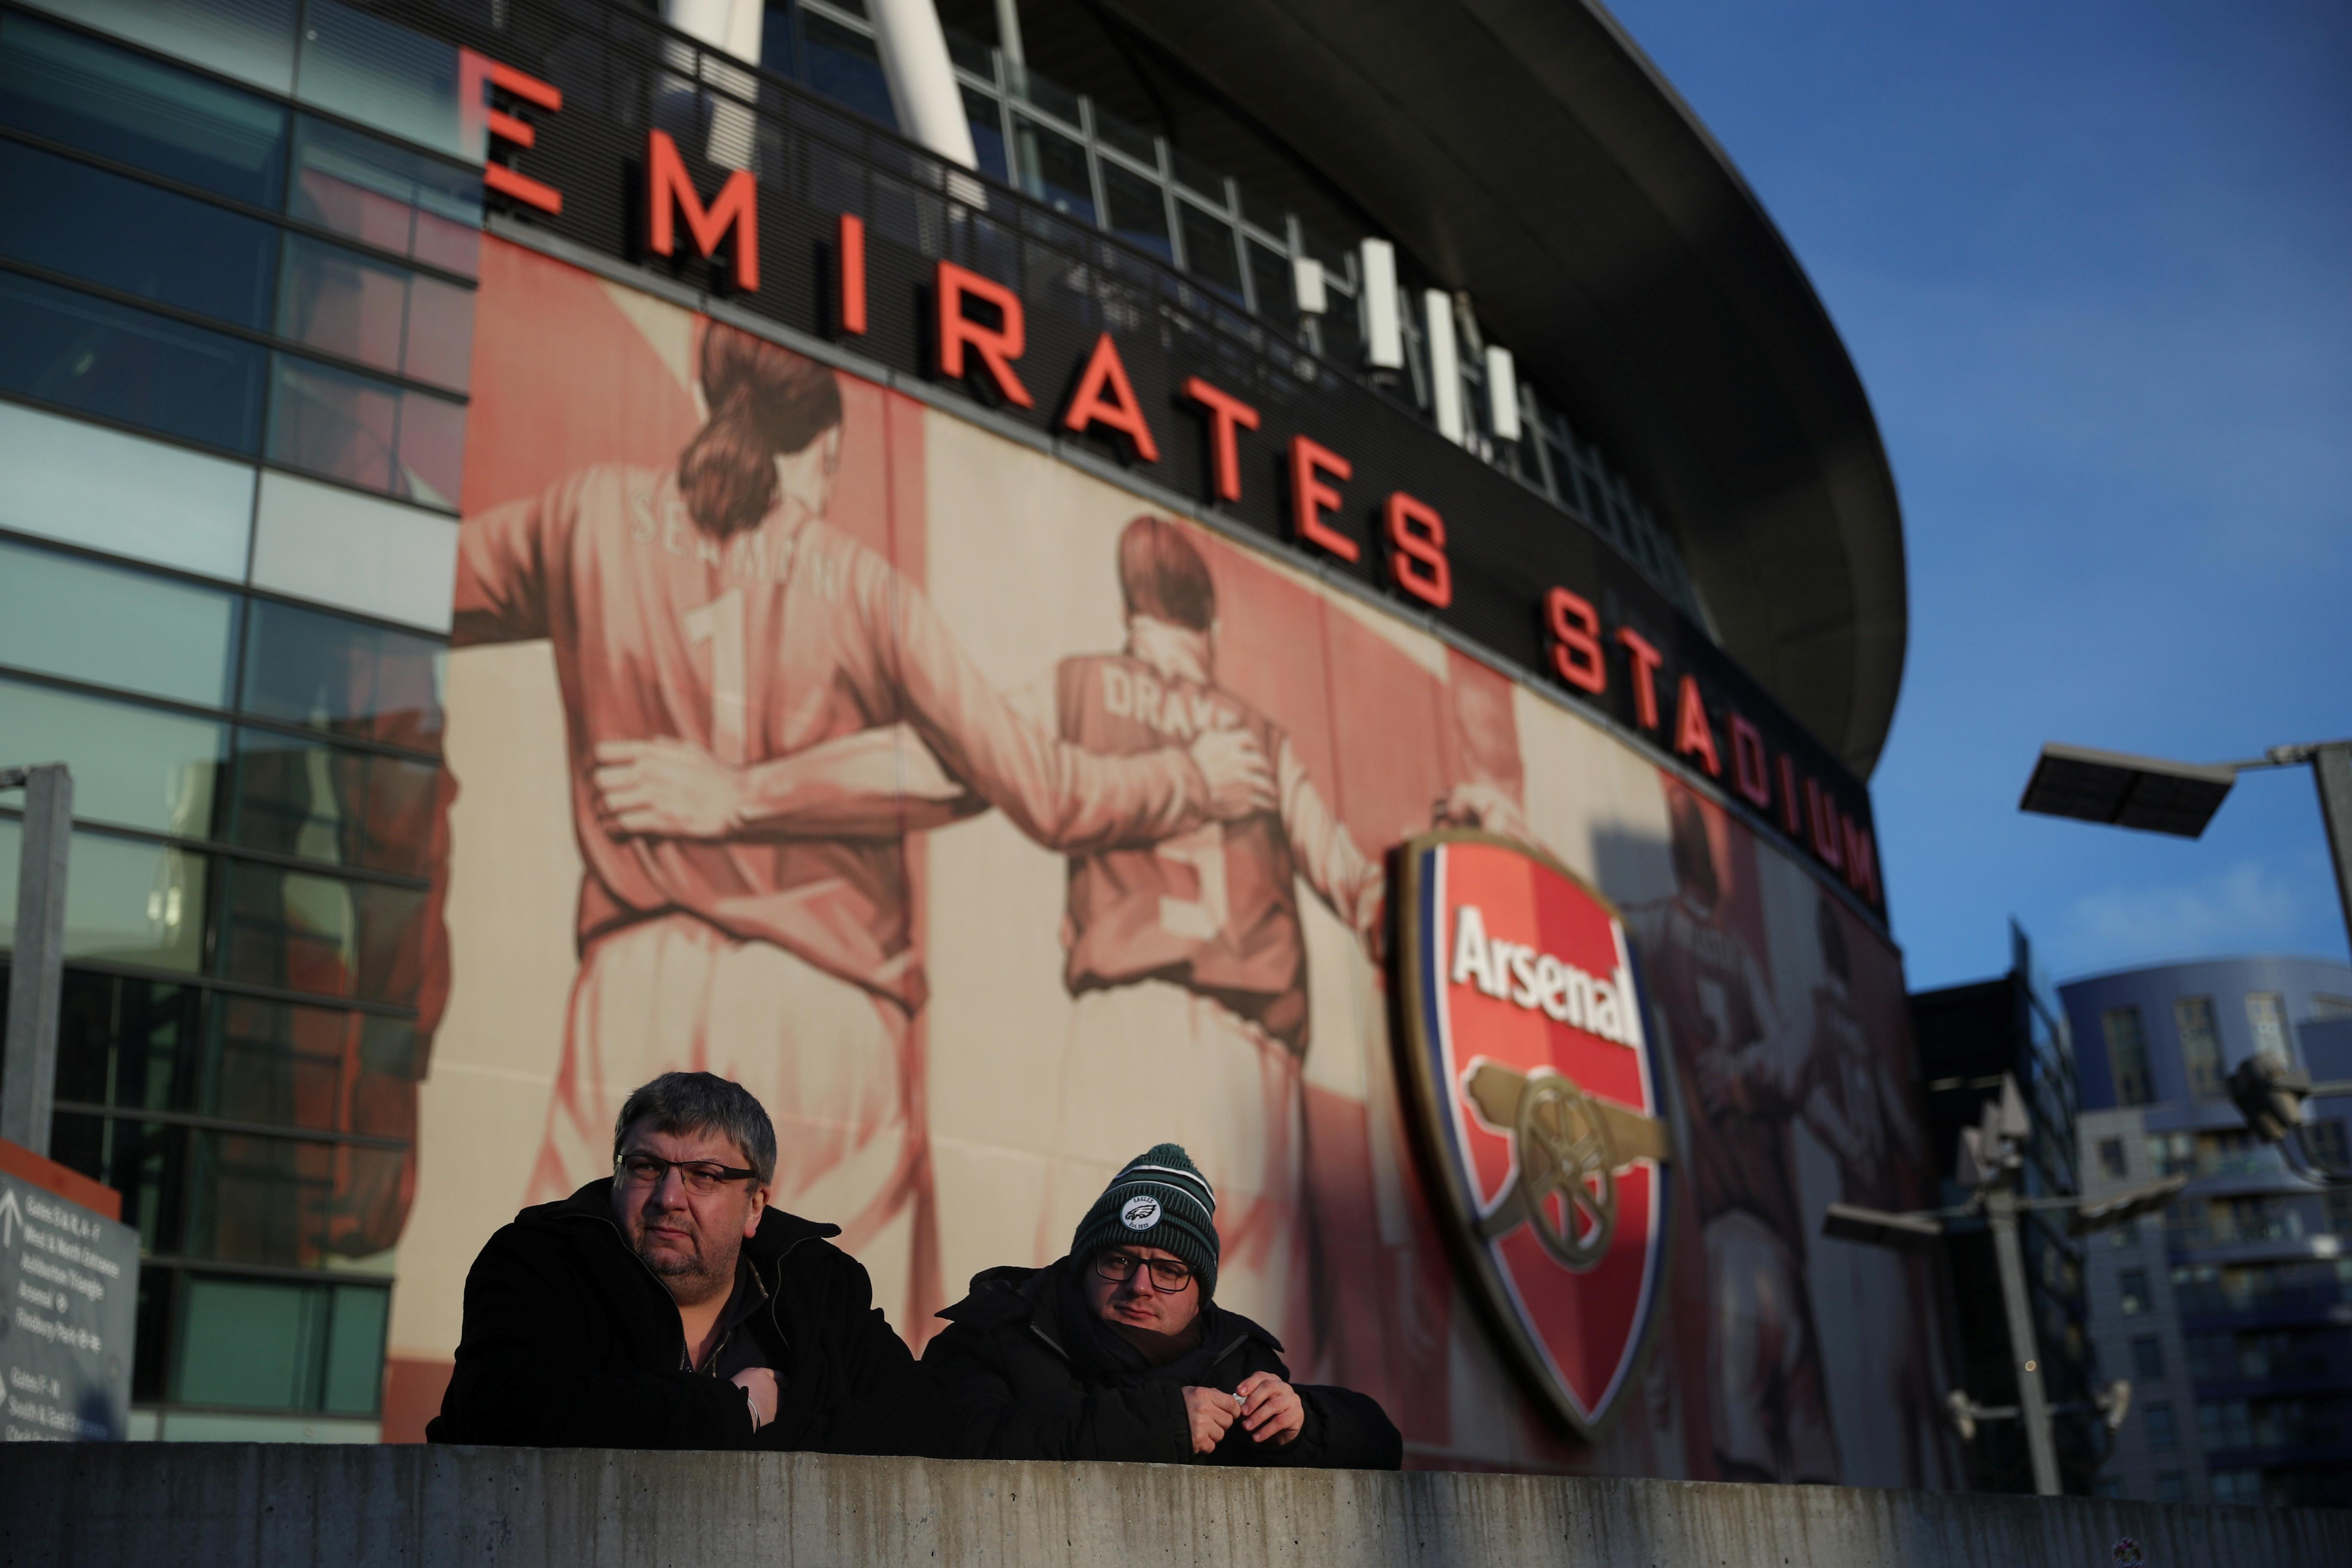 Arsenal-Man City game removed from broadcast schedule by China...